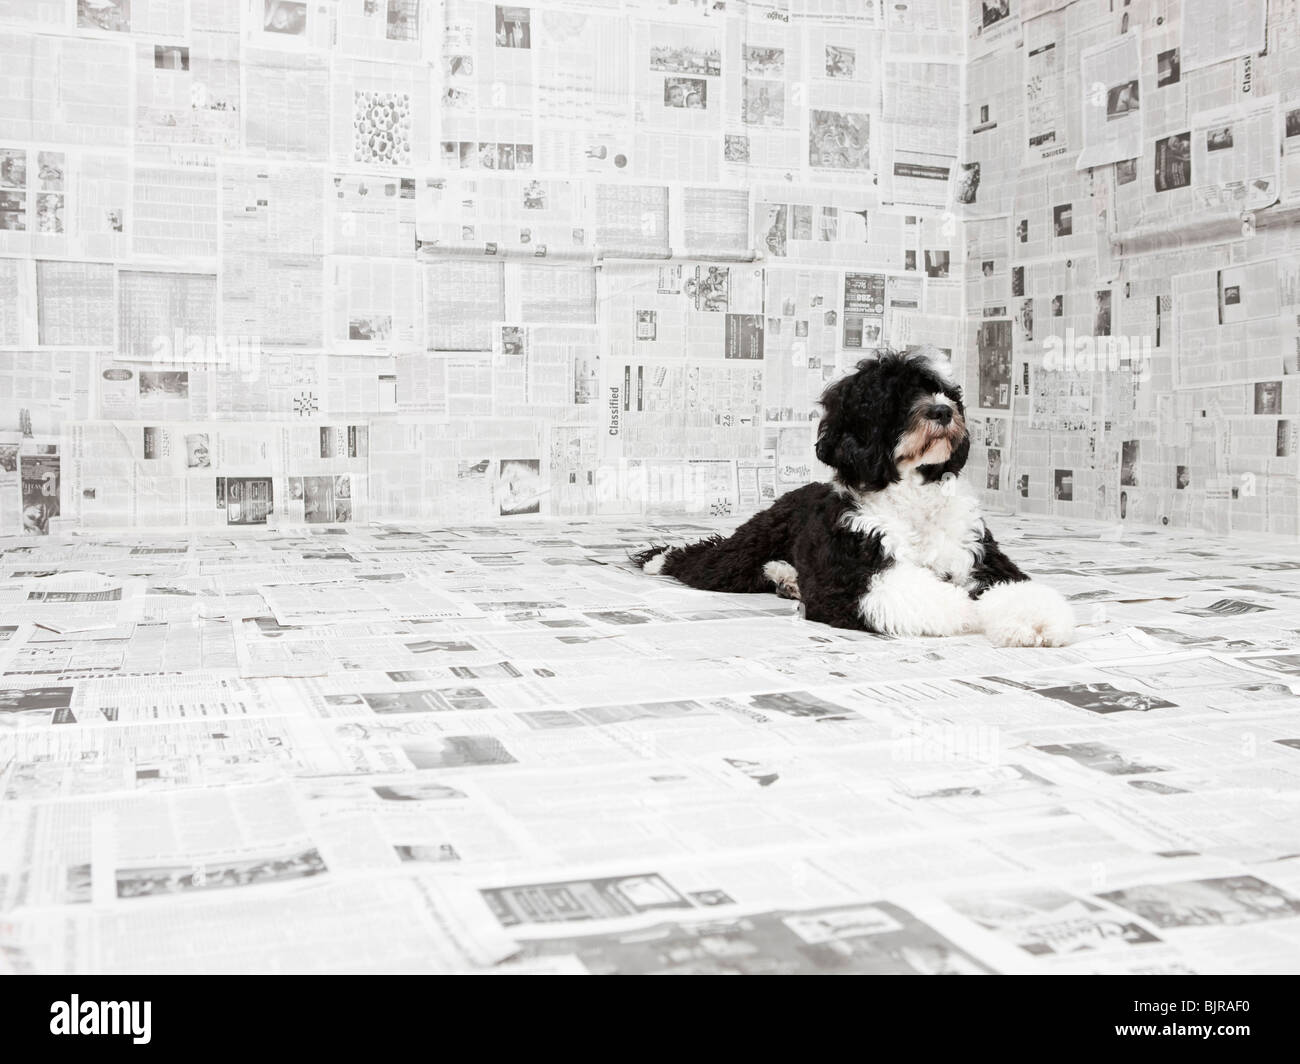 Portuguese Water Dog in room covered in newspaper - Stock Image